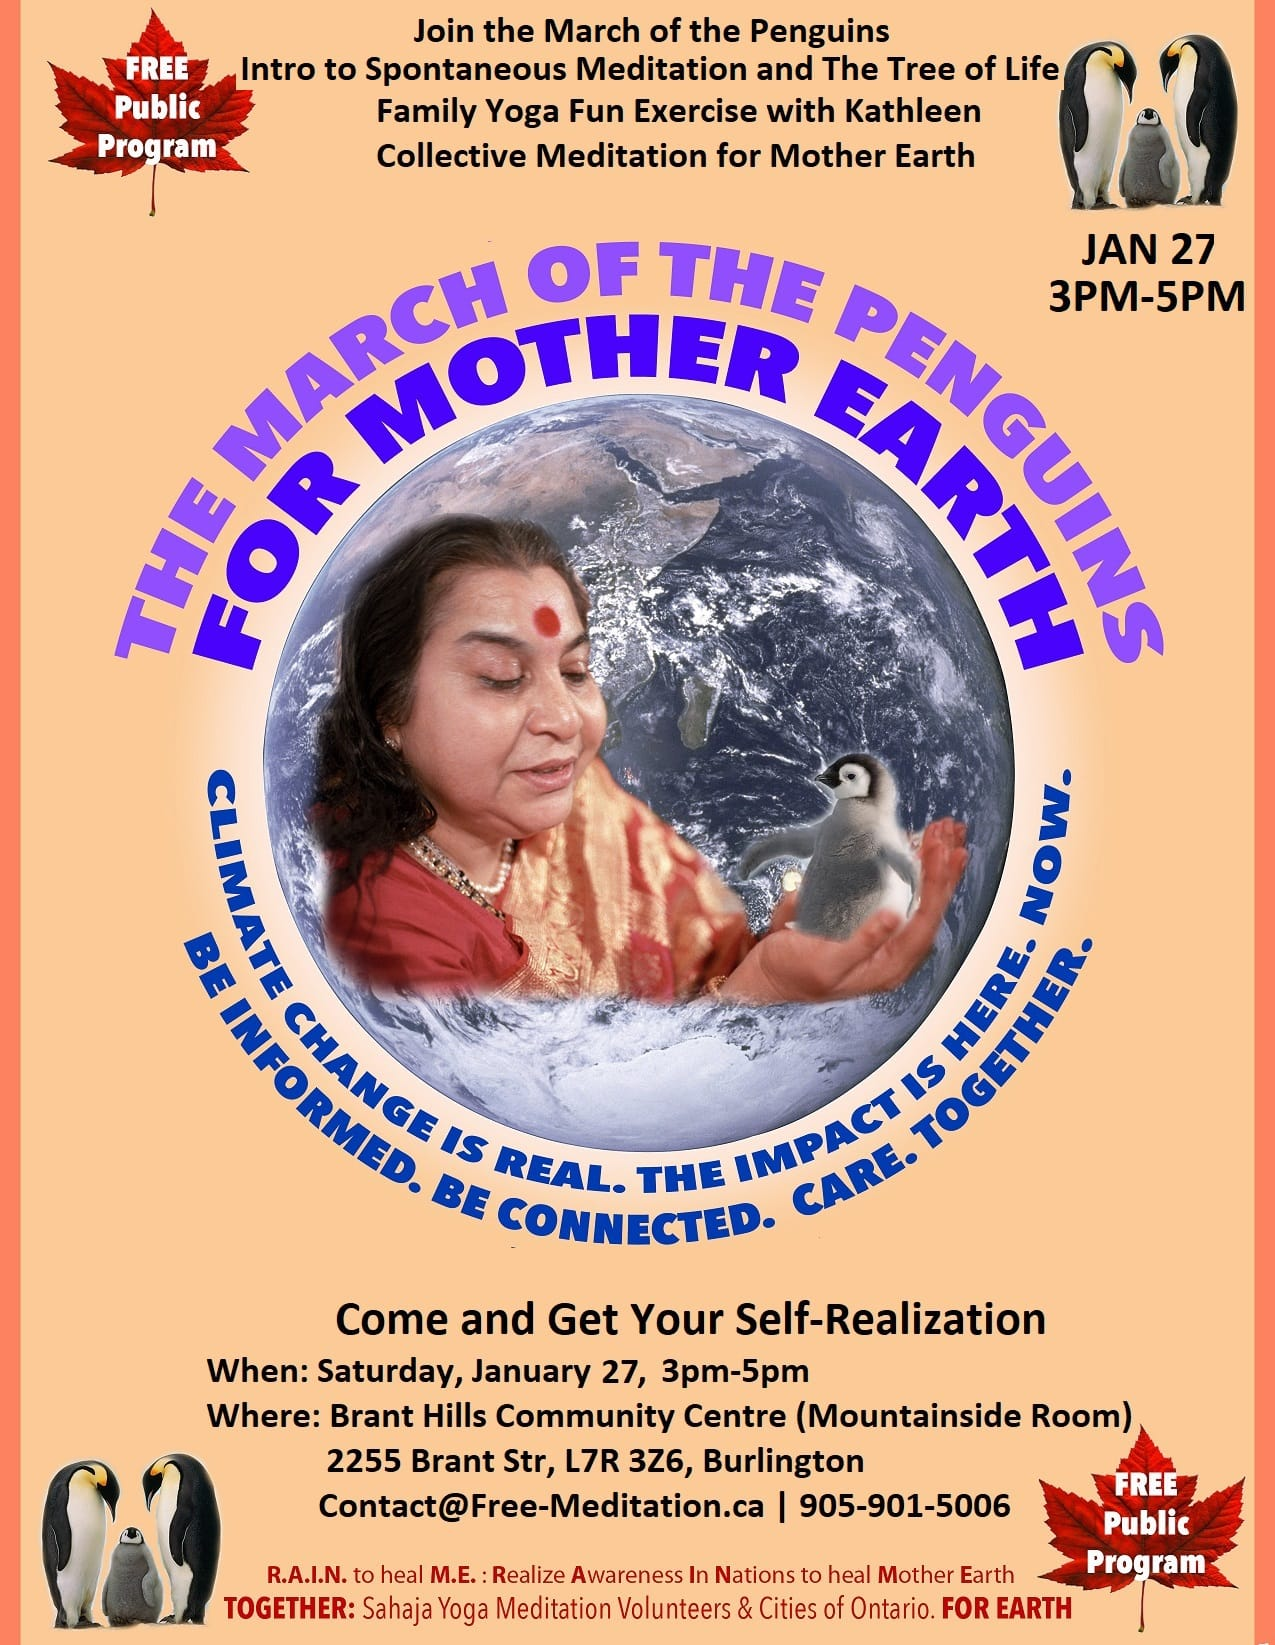 Join the March of the Penguins for The Trees of Mother Earth (Public Program on SAT, JAN 27, 2018) – RAIN to Heal M.E. Mother Earth